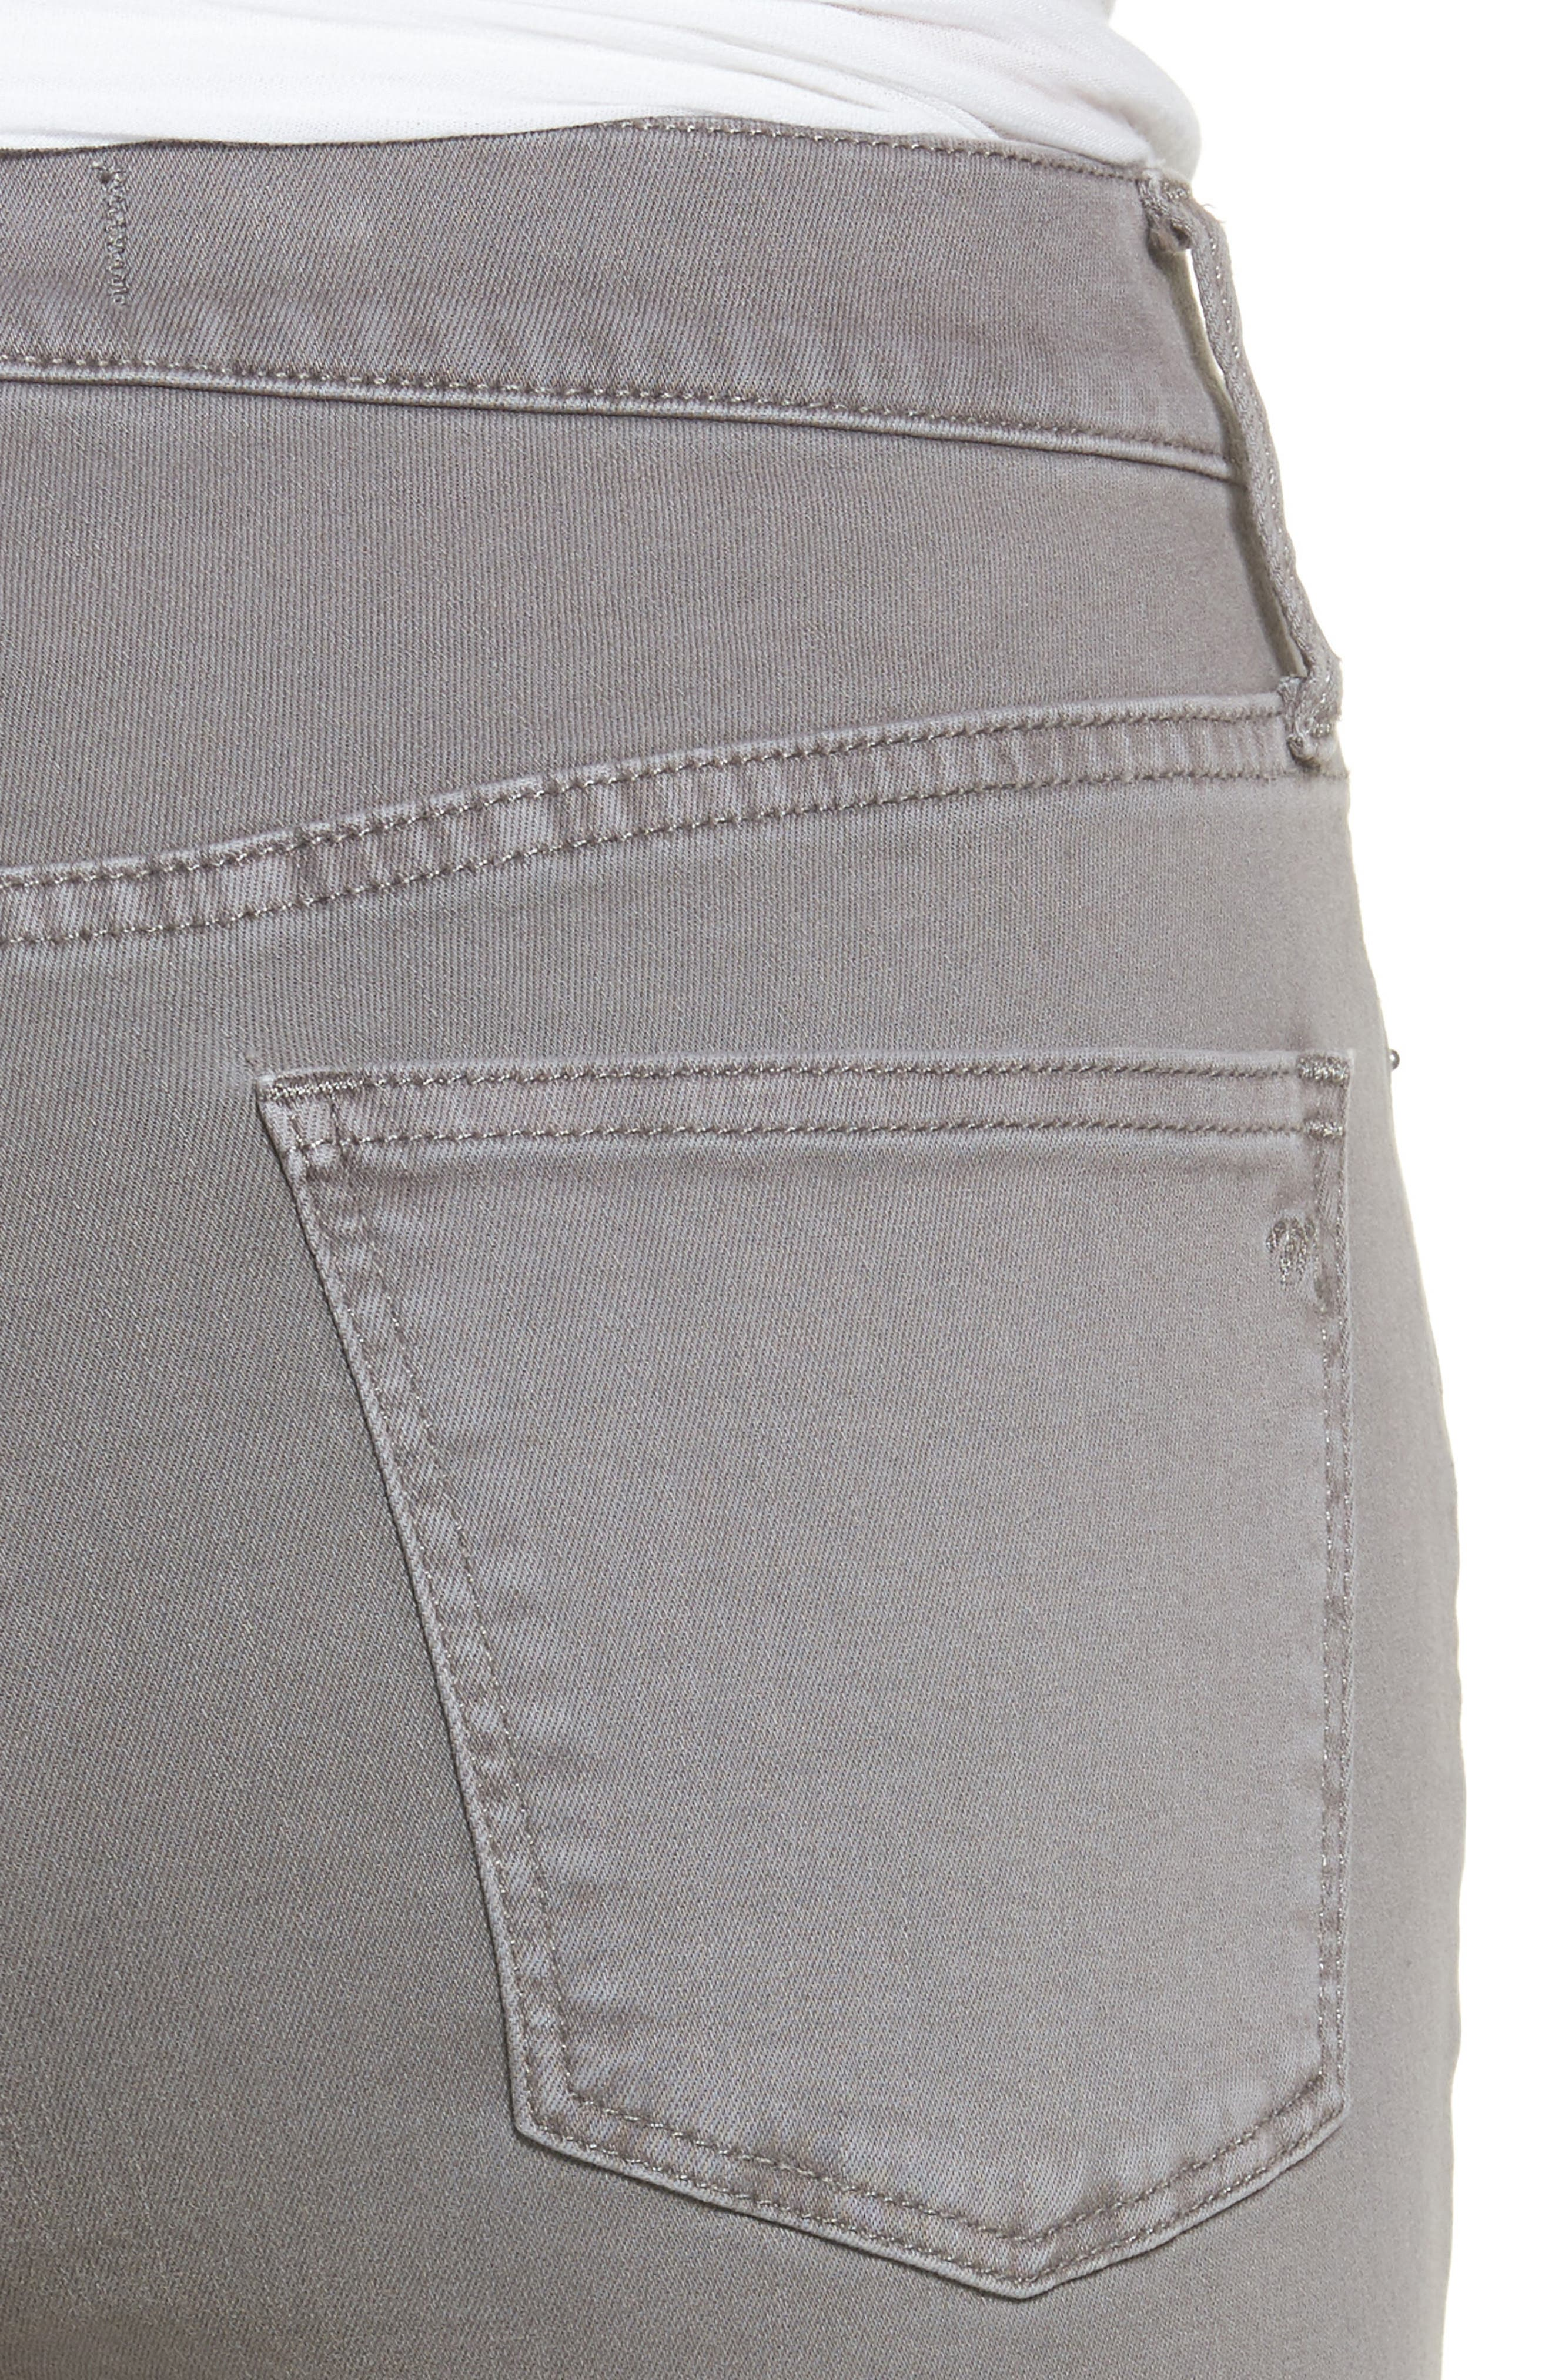 9-Inch High-Rise Skinny Jeans: Raw-Hem Garment-Dyed Edition,                             Alternate thumbnail 4, color,                             020